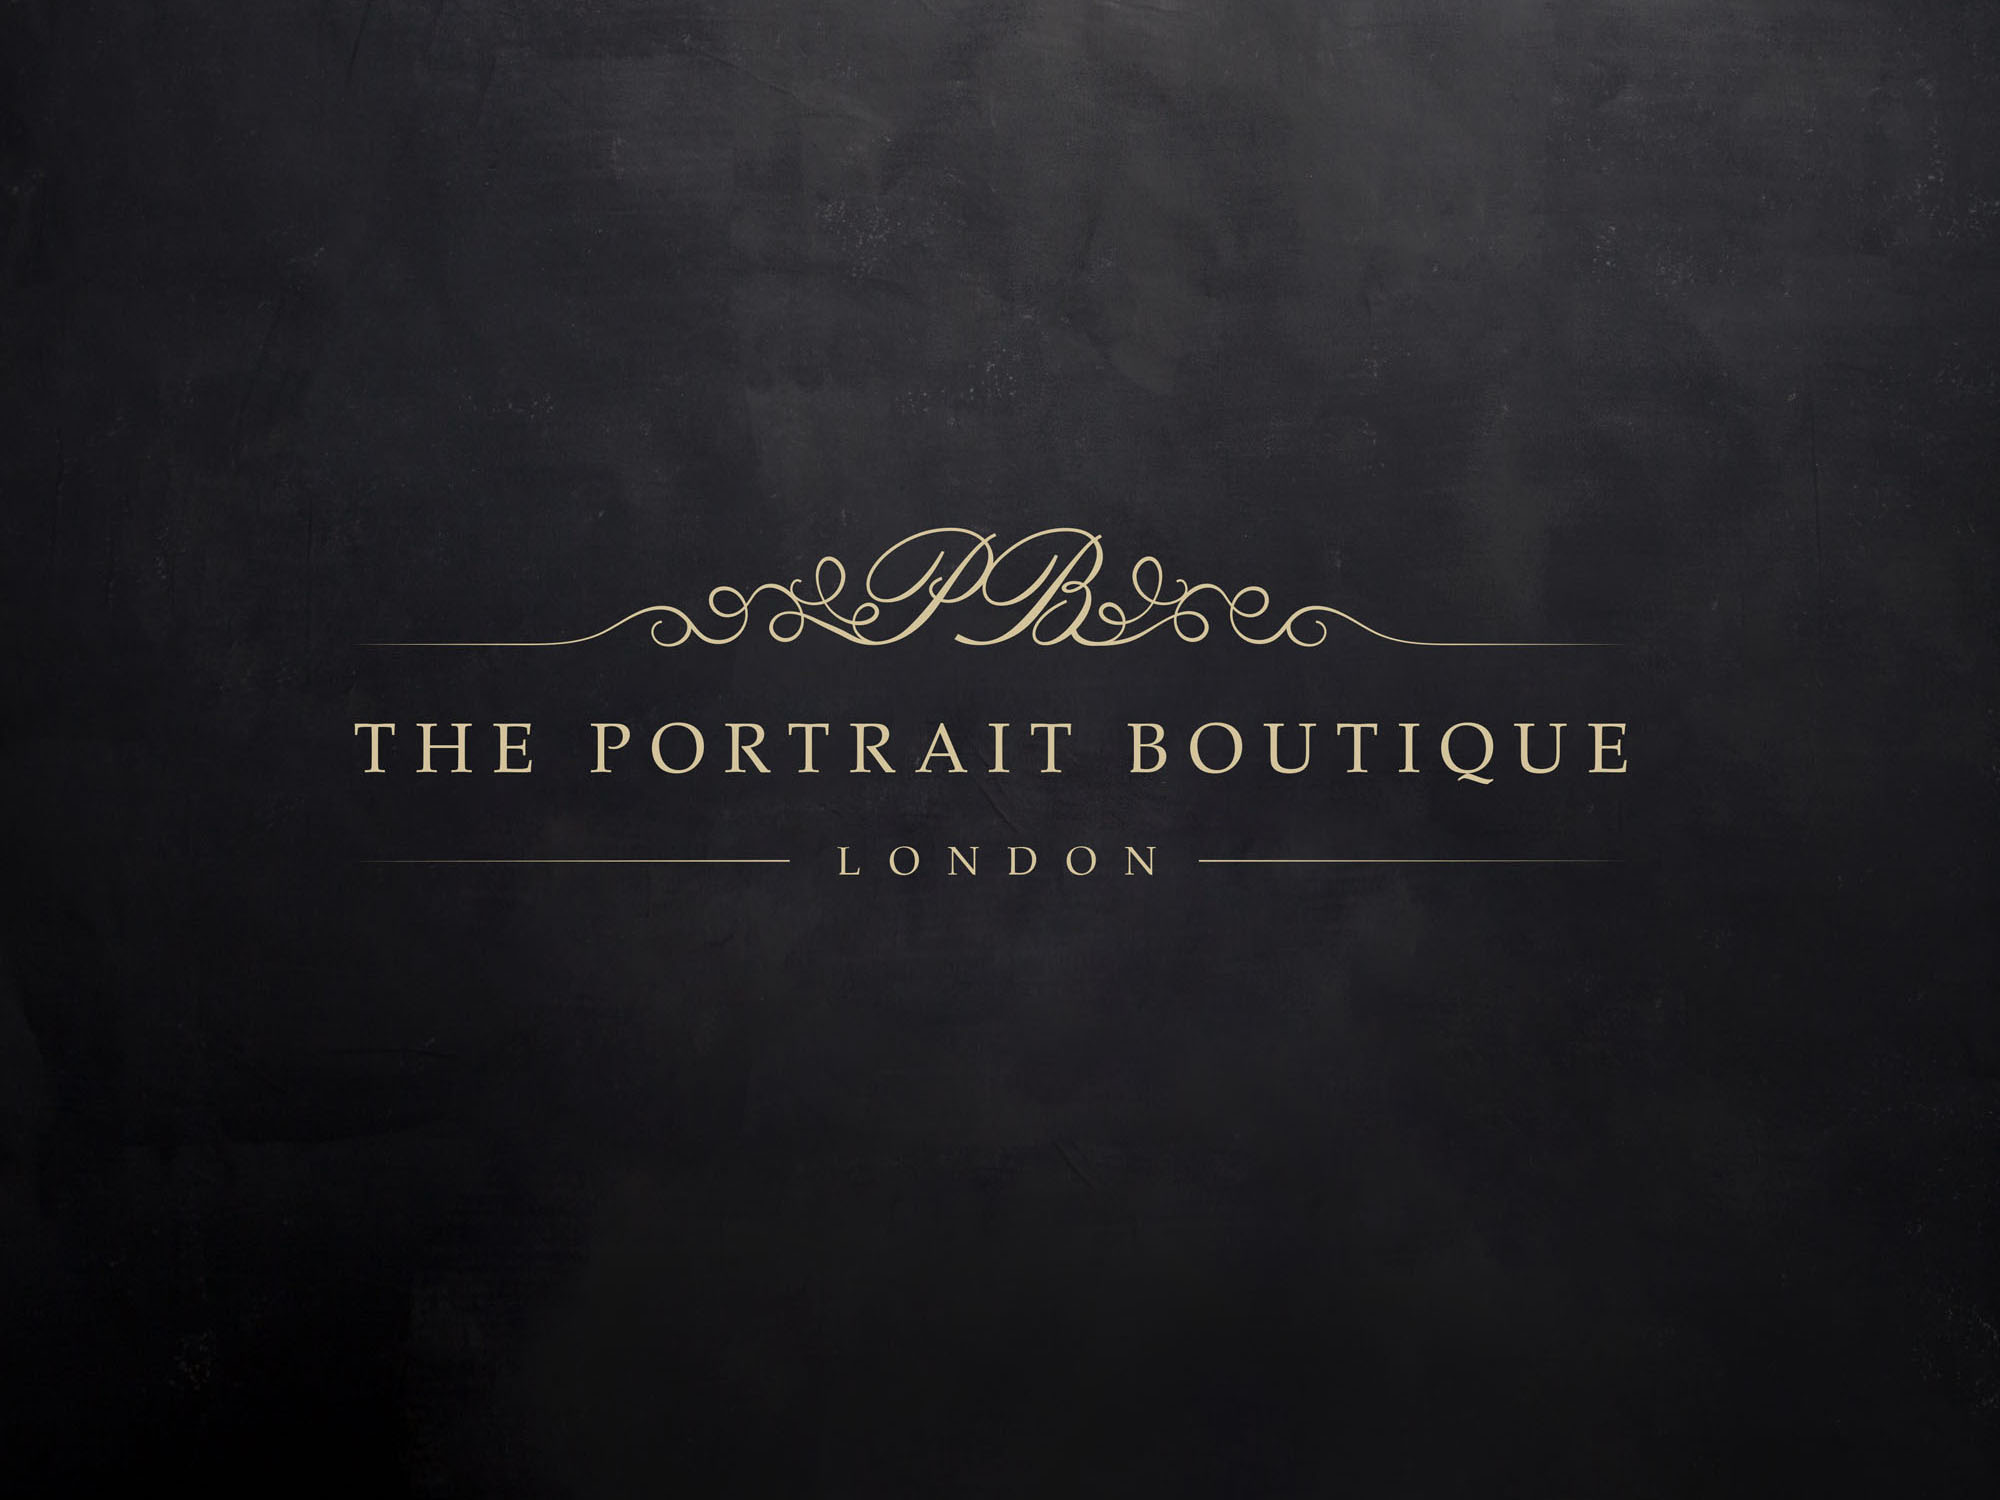 The Portrait Boutique London Branding and Identity Design Project